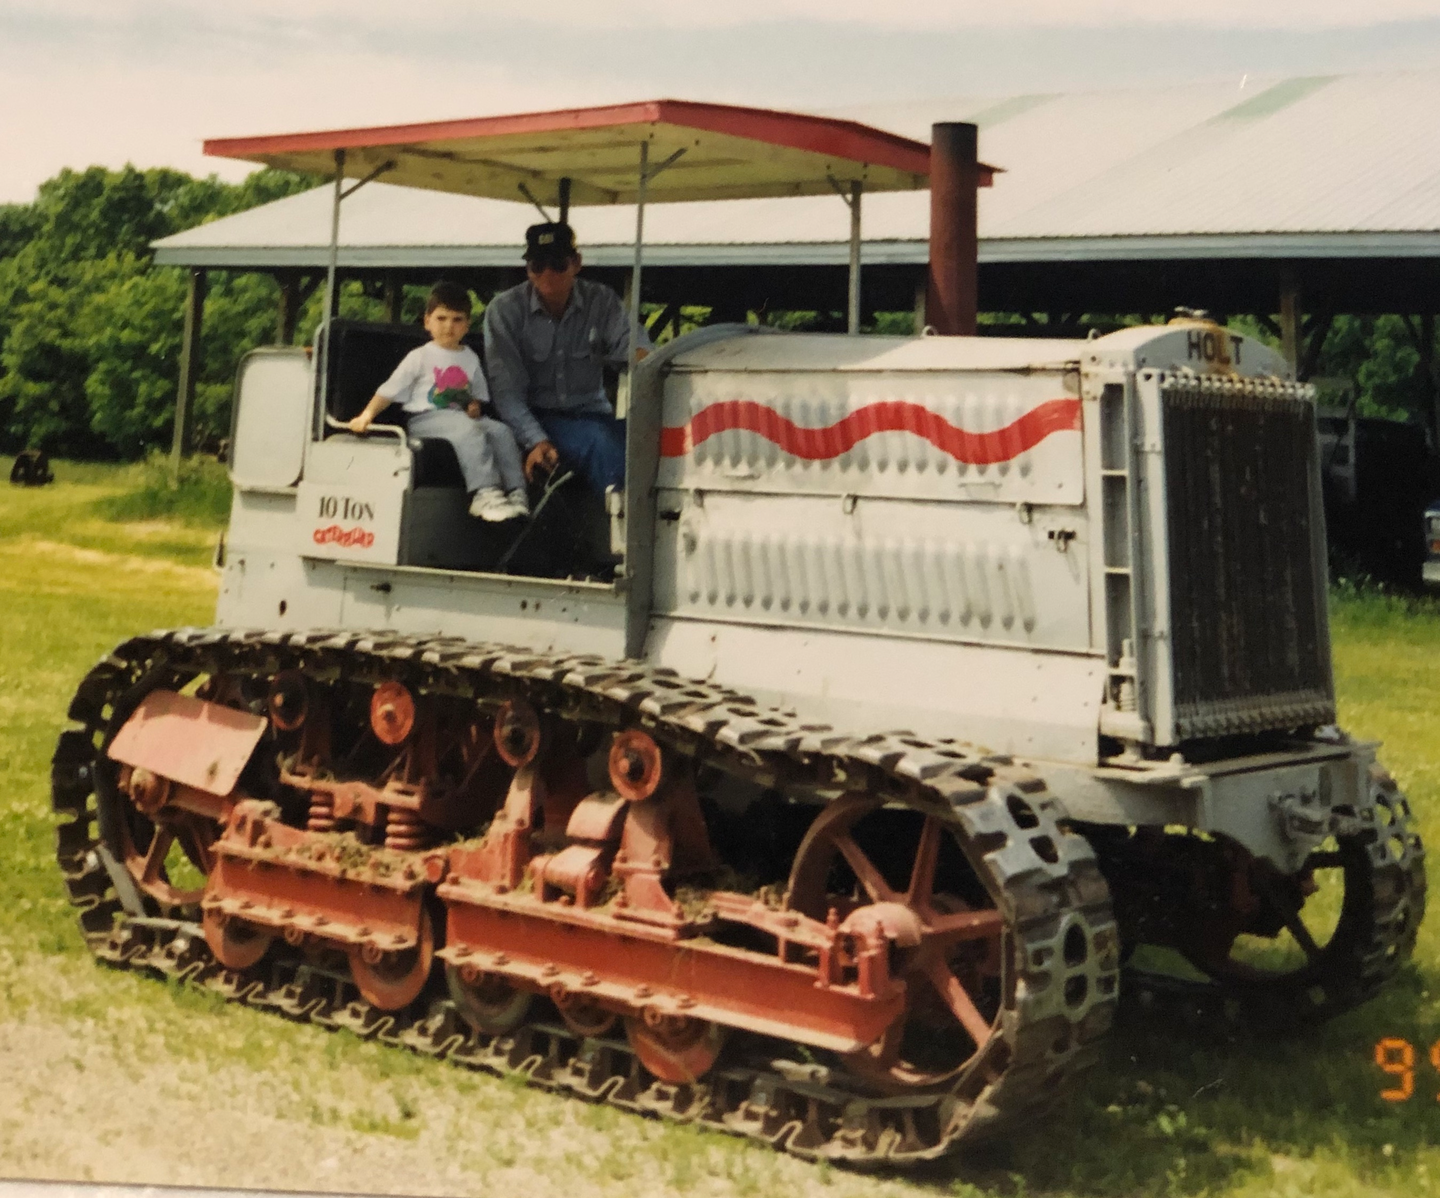 Scott Vouk at age 4 gets a ride on the Holt Caterpillar 10-Ton.